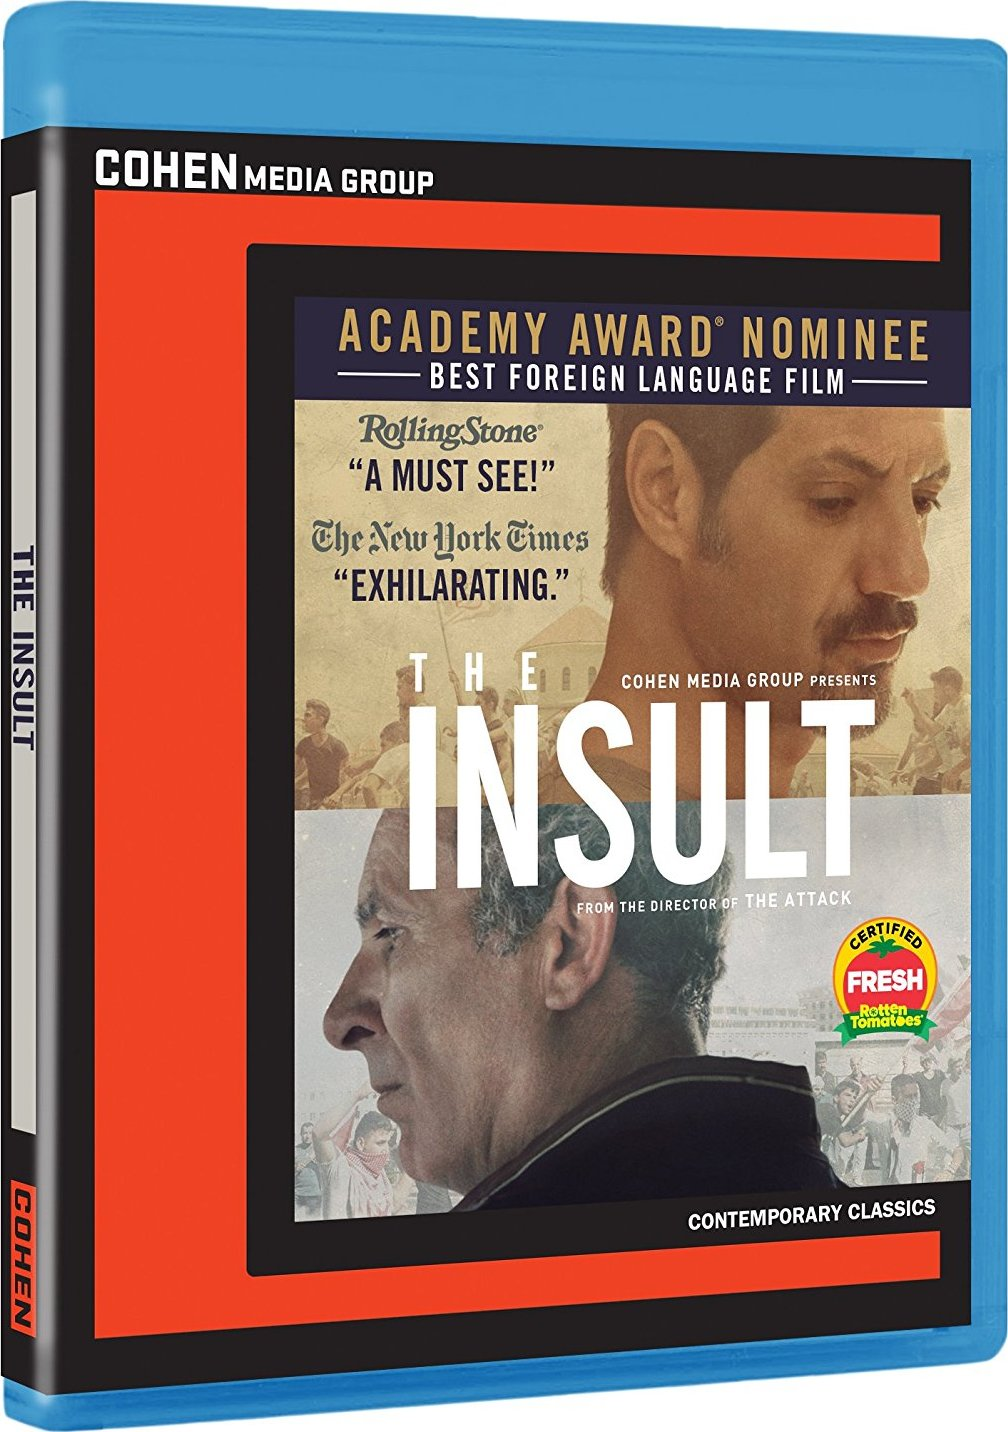 The Insult (2017) Blu-ray